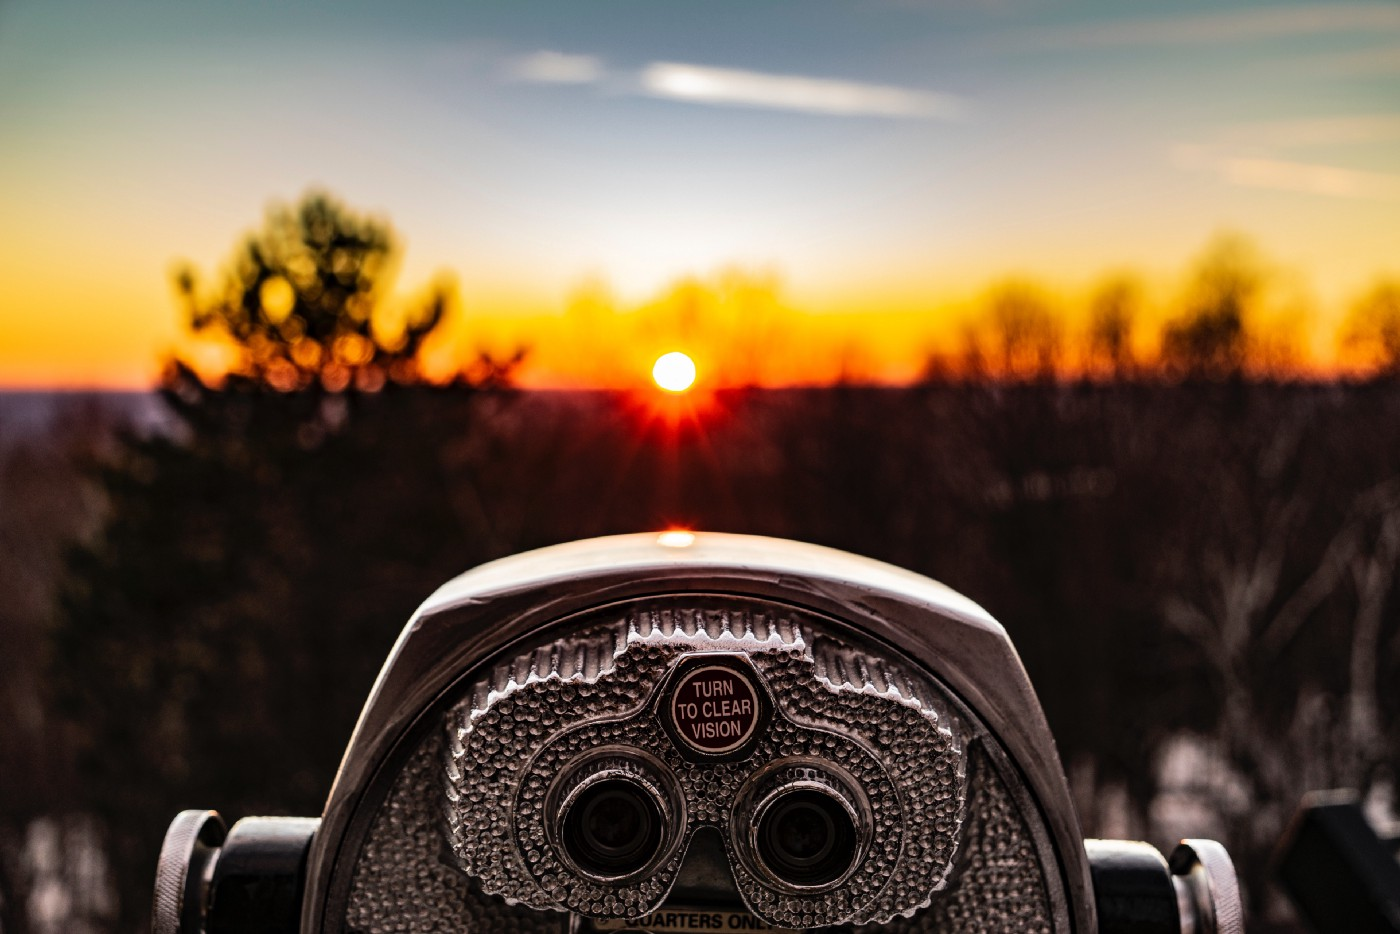 Coin operated tower viewer looking at a sunset